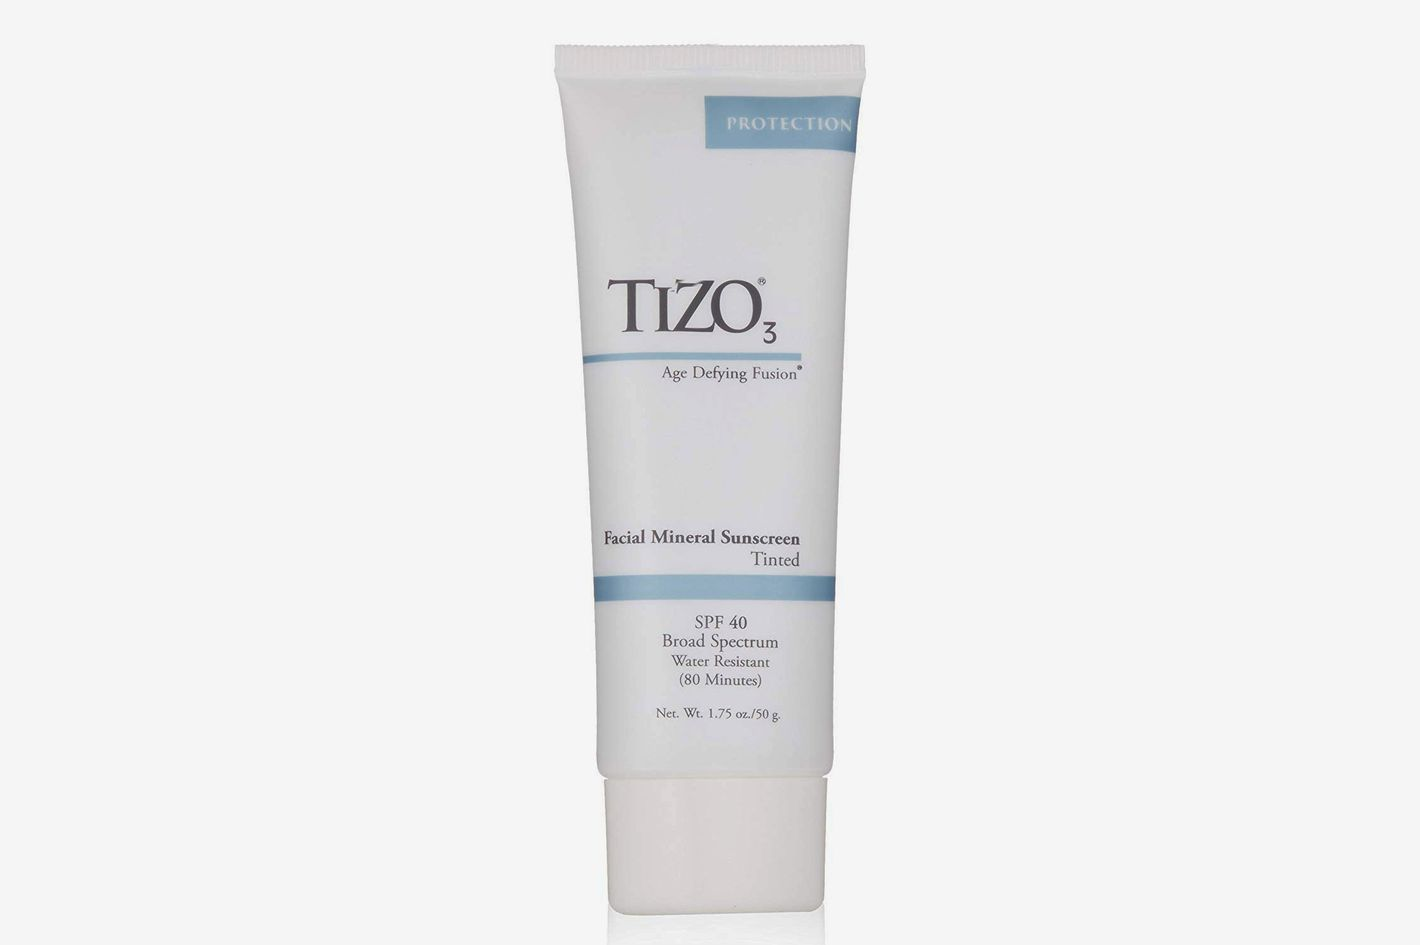 TIZO3 Facial Mineral Sunscreen Tinted SPF 40